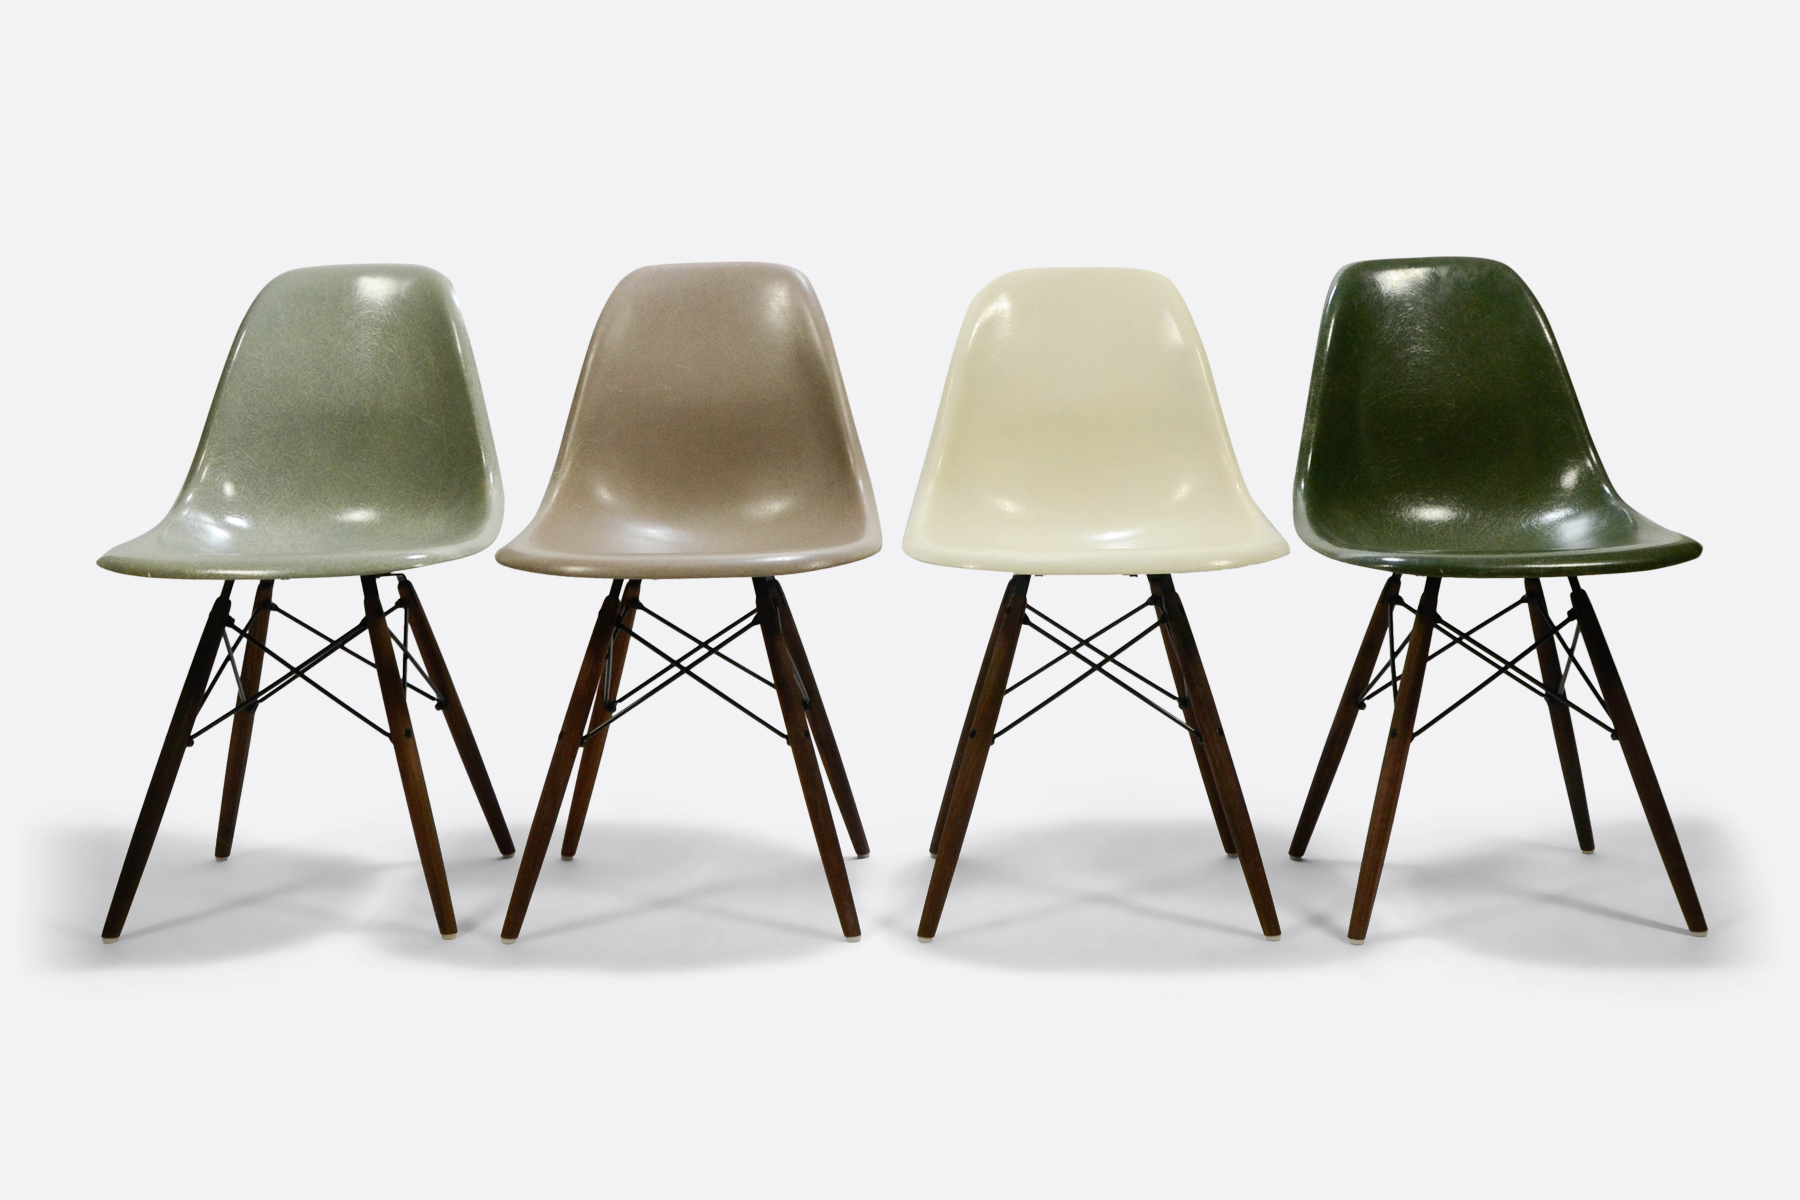 Eames DSW set of 4 Seafoam Green - Greige - Off White - Forest Green1